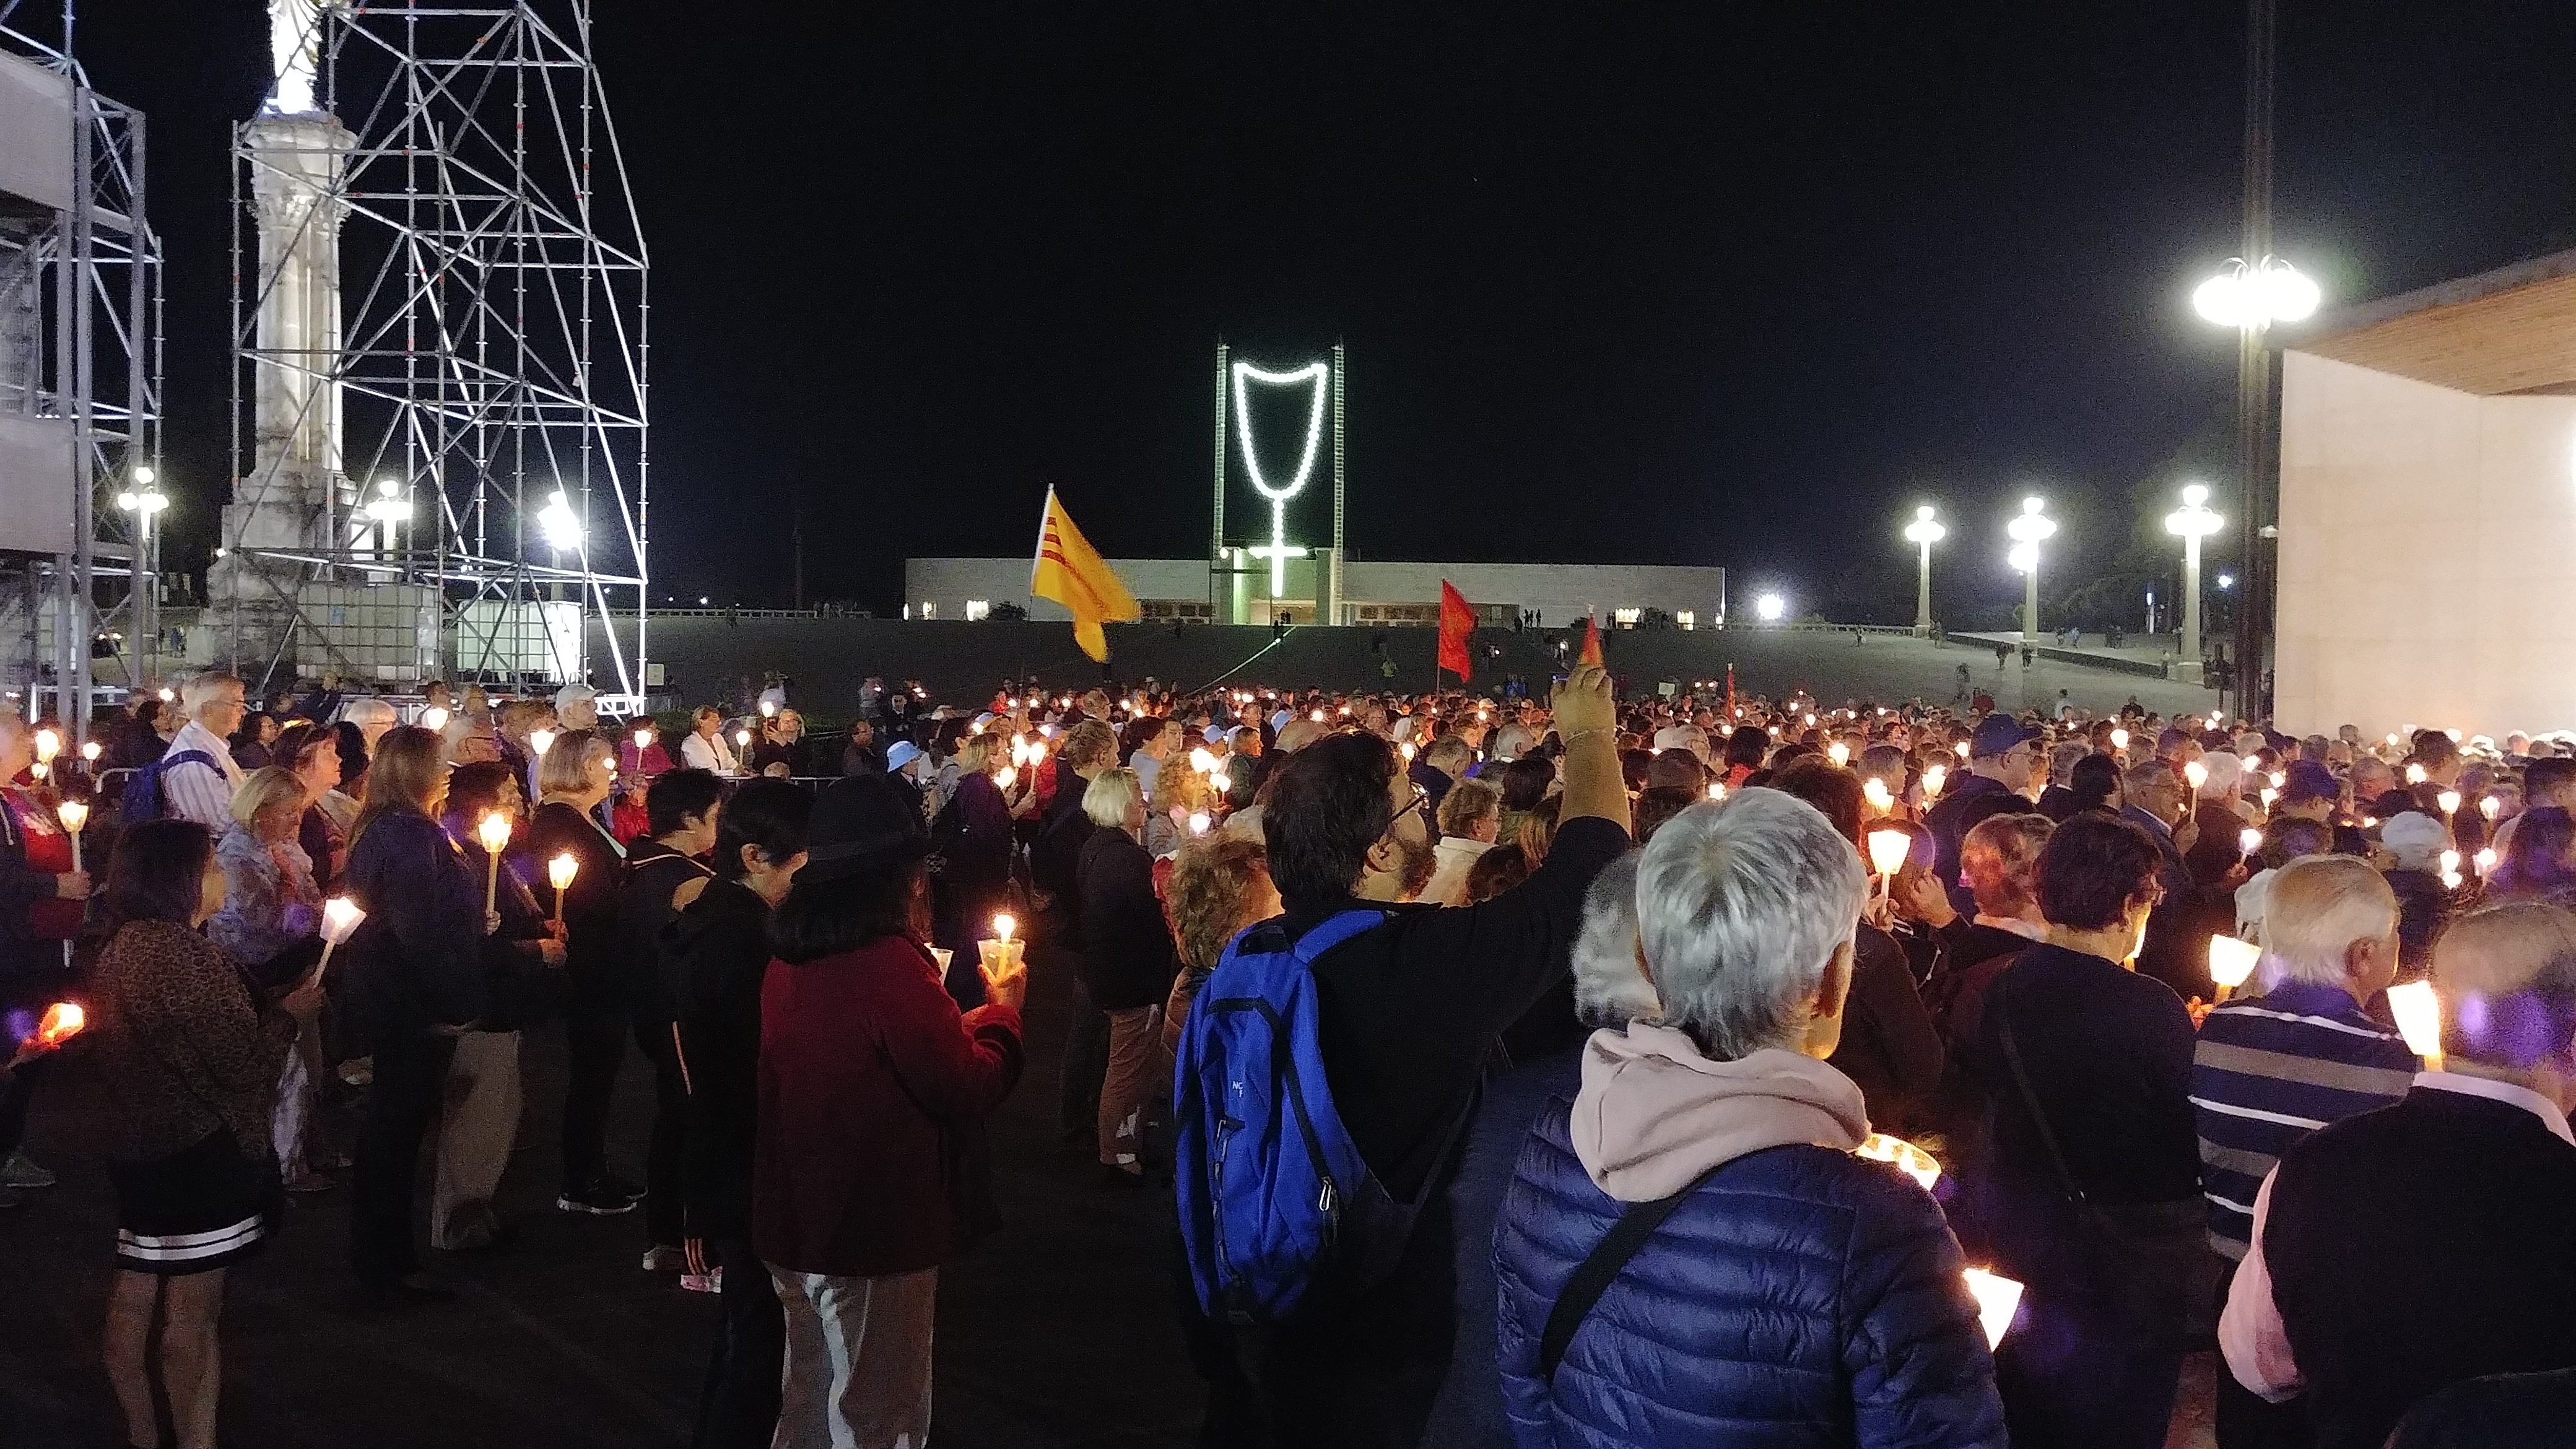 The faithful throughout the world descend nightly in Fatima for the procession. (CT Photo/Greg Hartman)